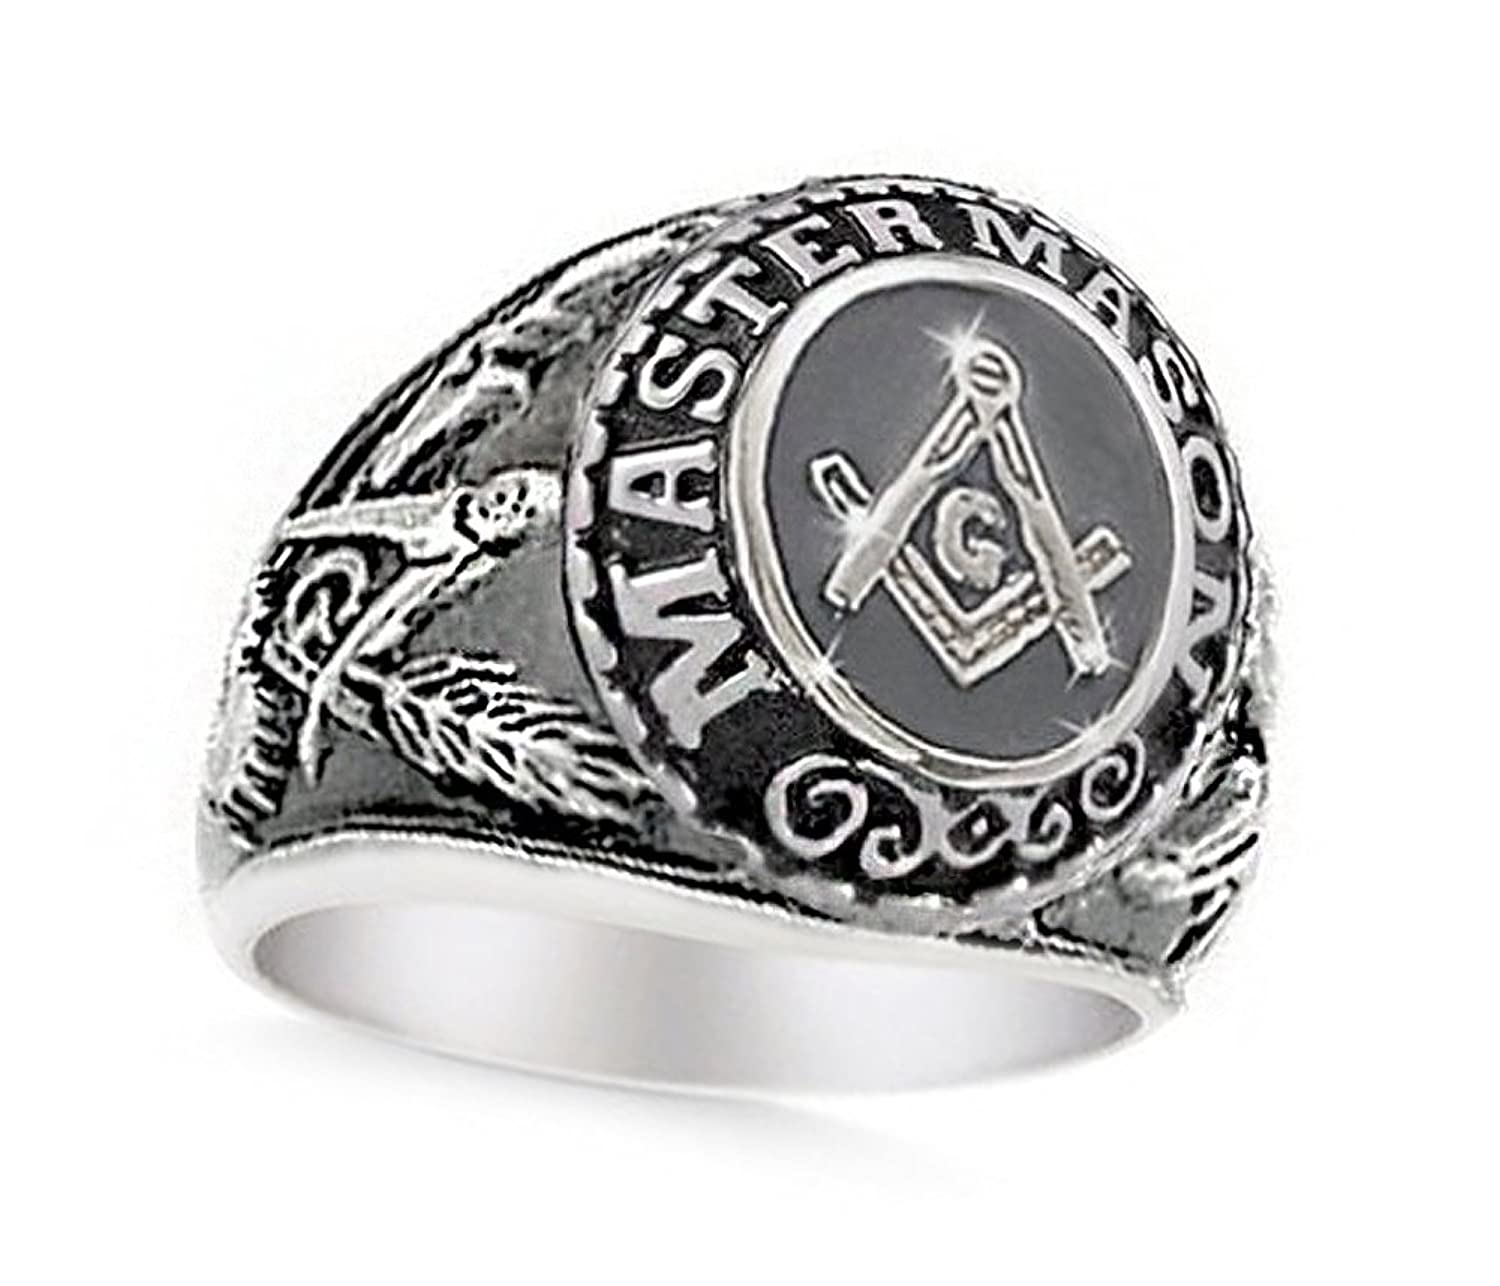 tur freemason ring edge carbide fj mens band jewelry rings tungsten bling beveled masonic